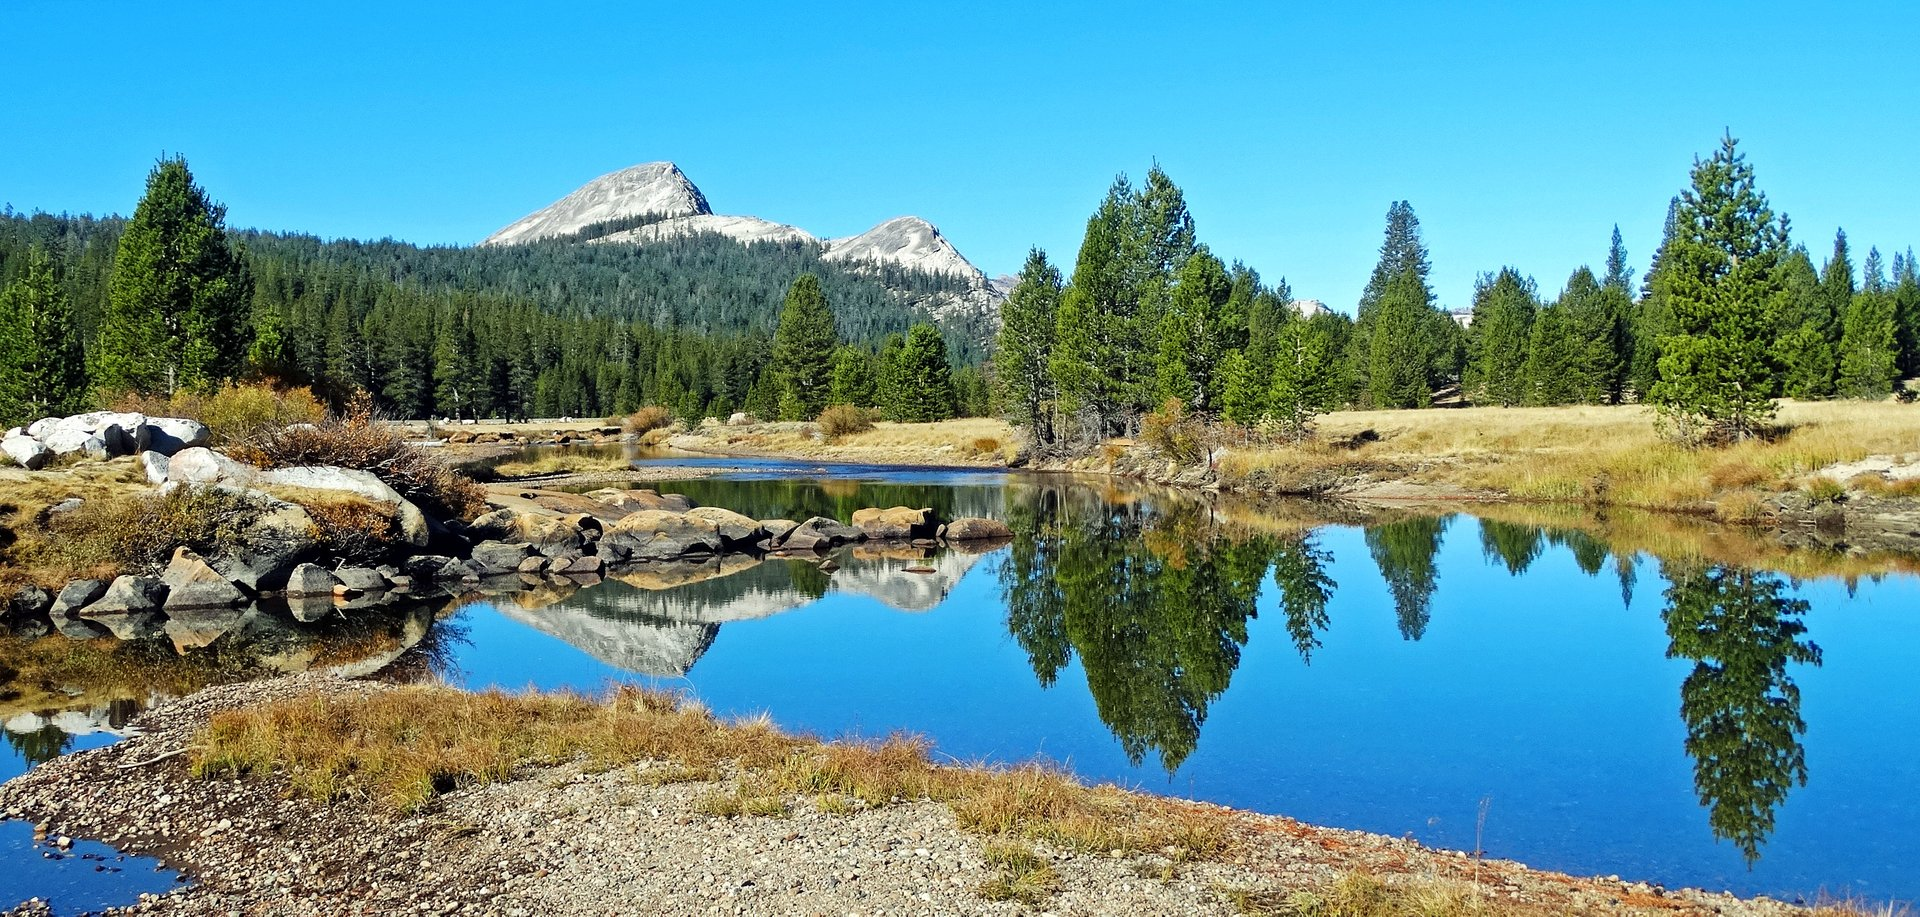 Best time to see Tuolumne Meadows in Yosemite 2020